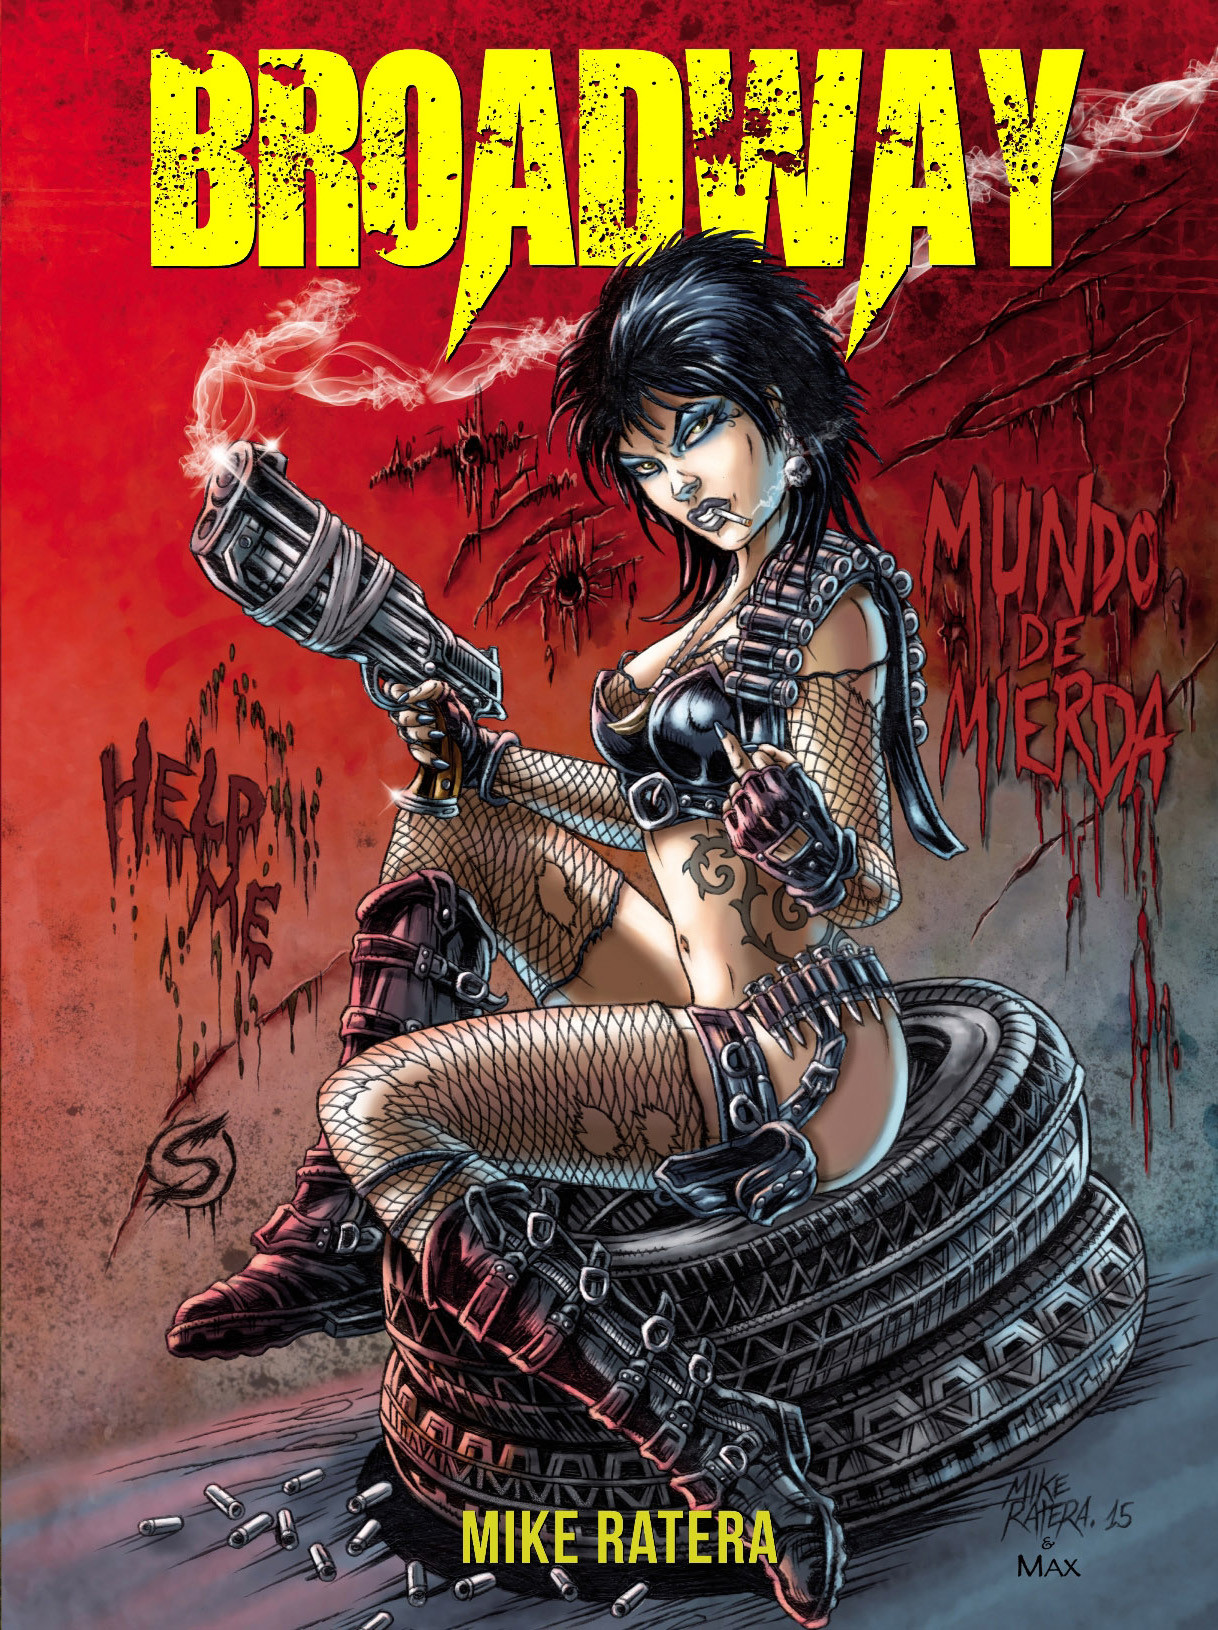 Mike ratera broadway cover c1